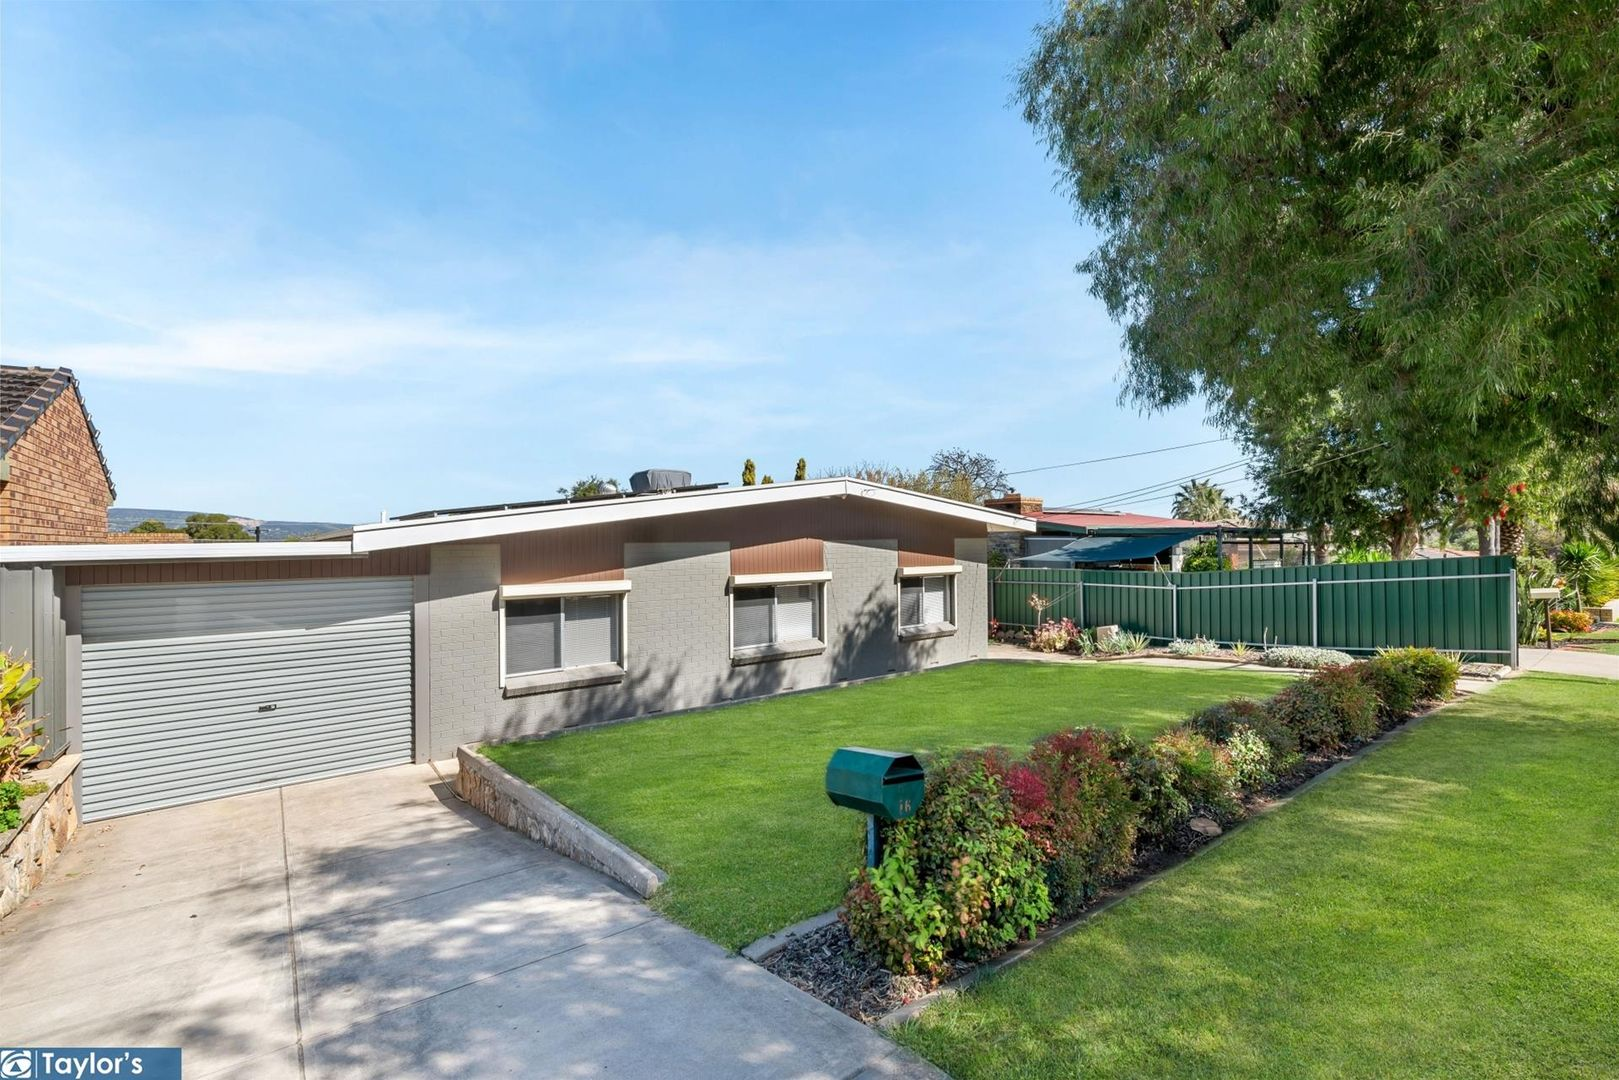 16 The Parade, Holden Hill SA 5088, Image 0